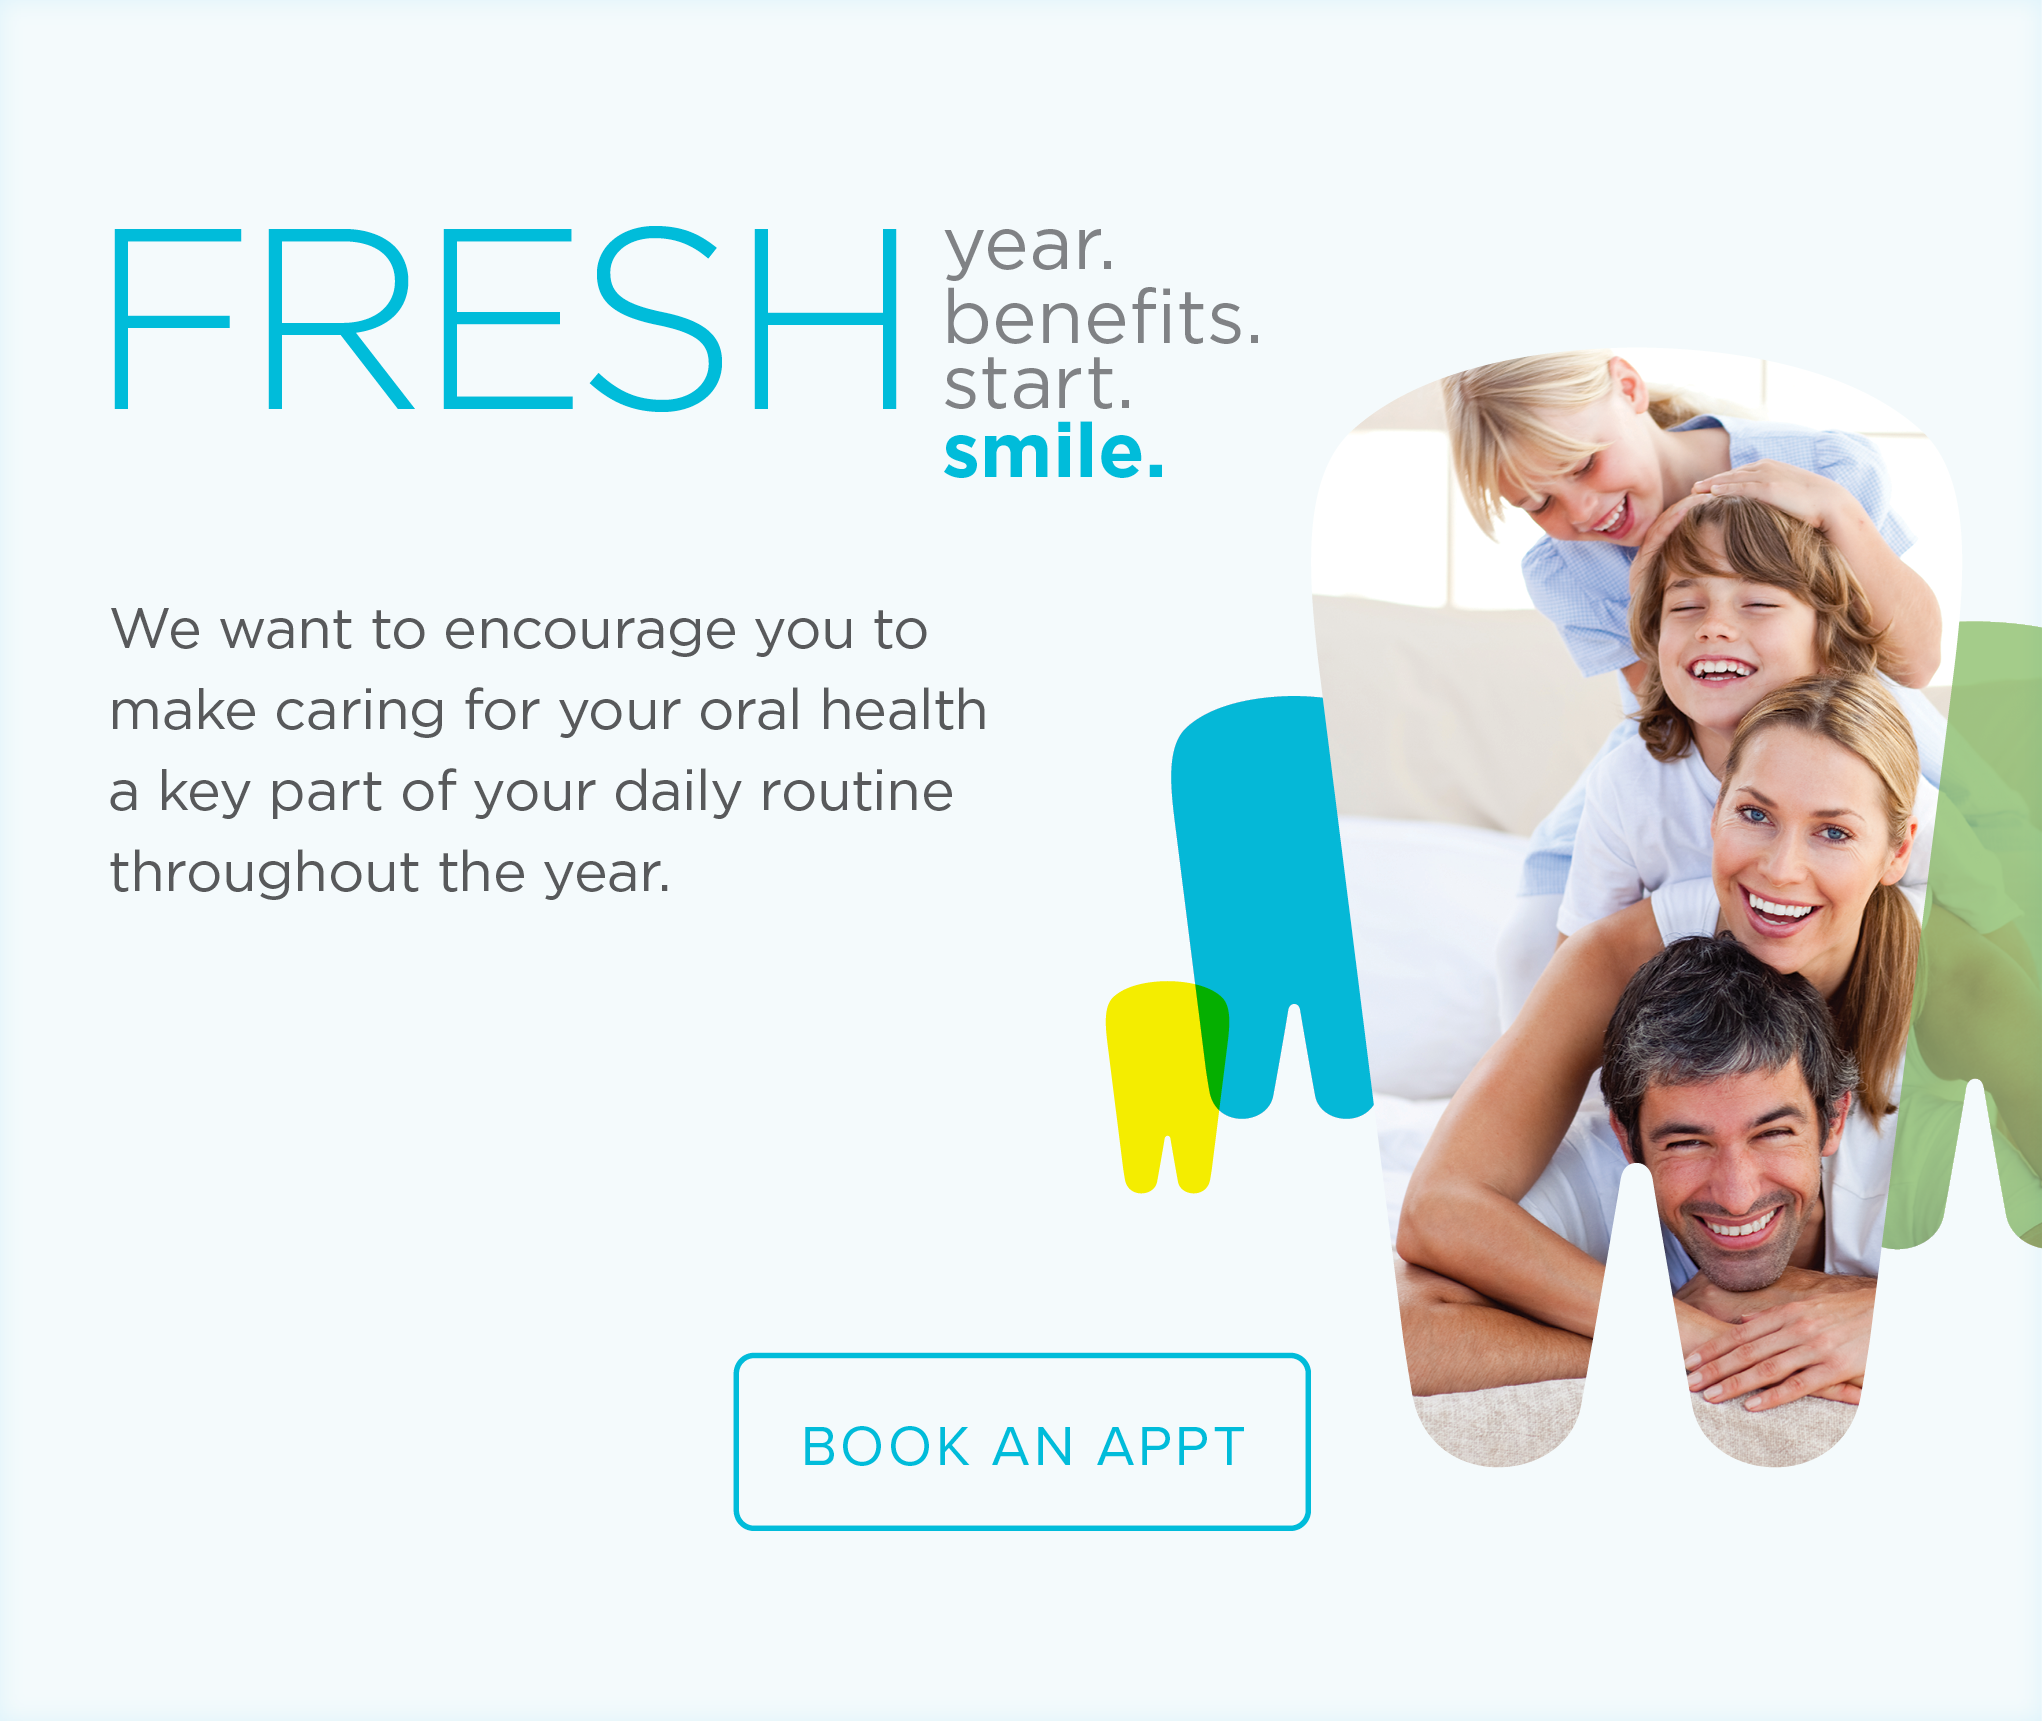 Parkville Modern Dentistry and Orthodontics - Make the Most of Your Benefits